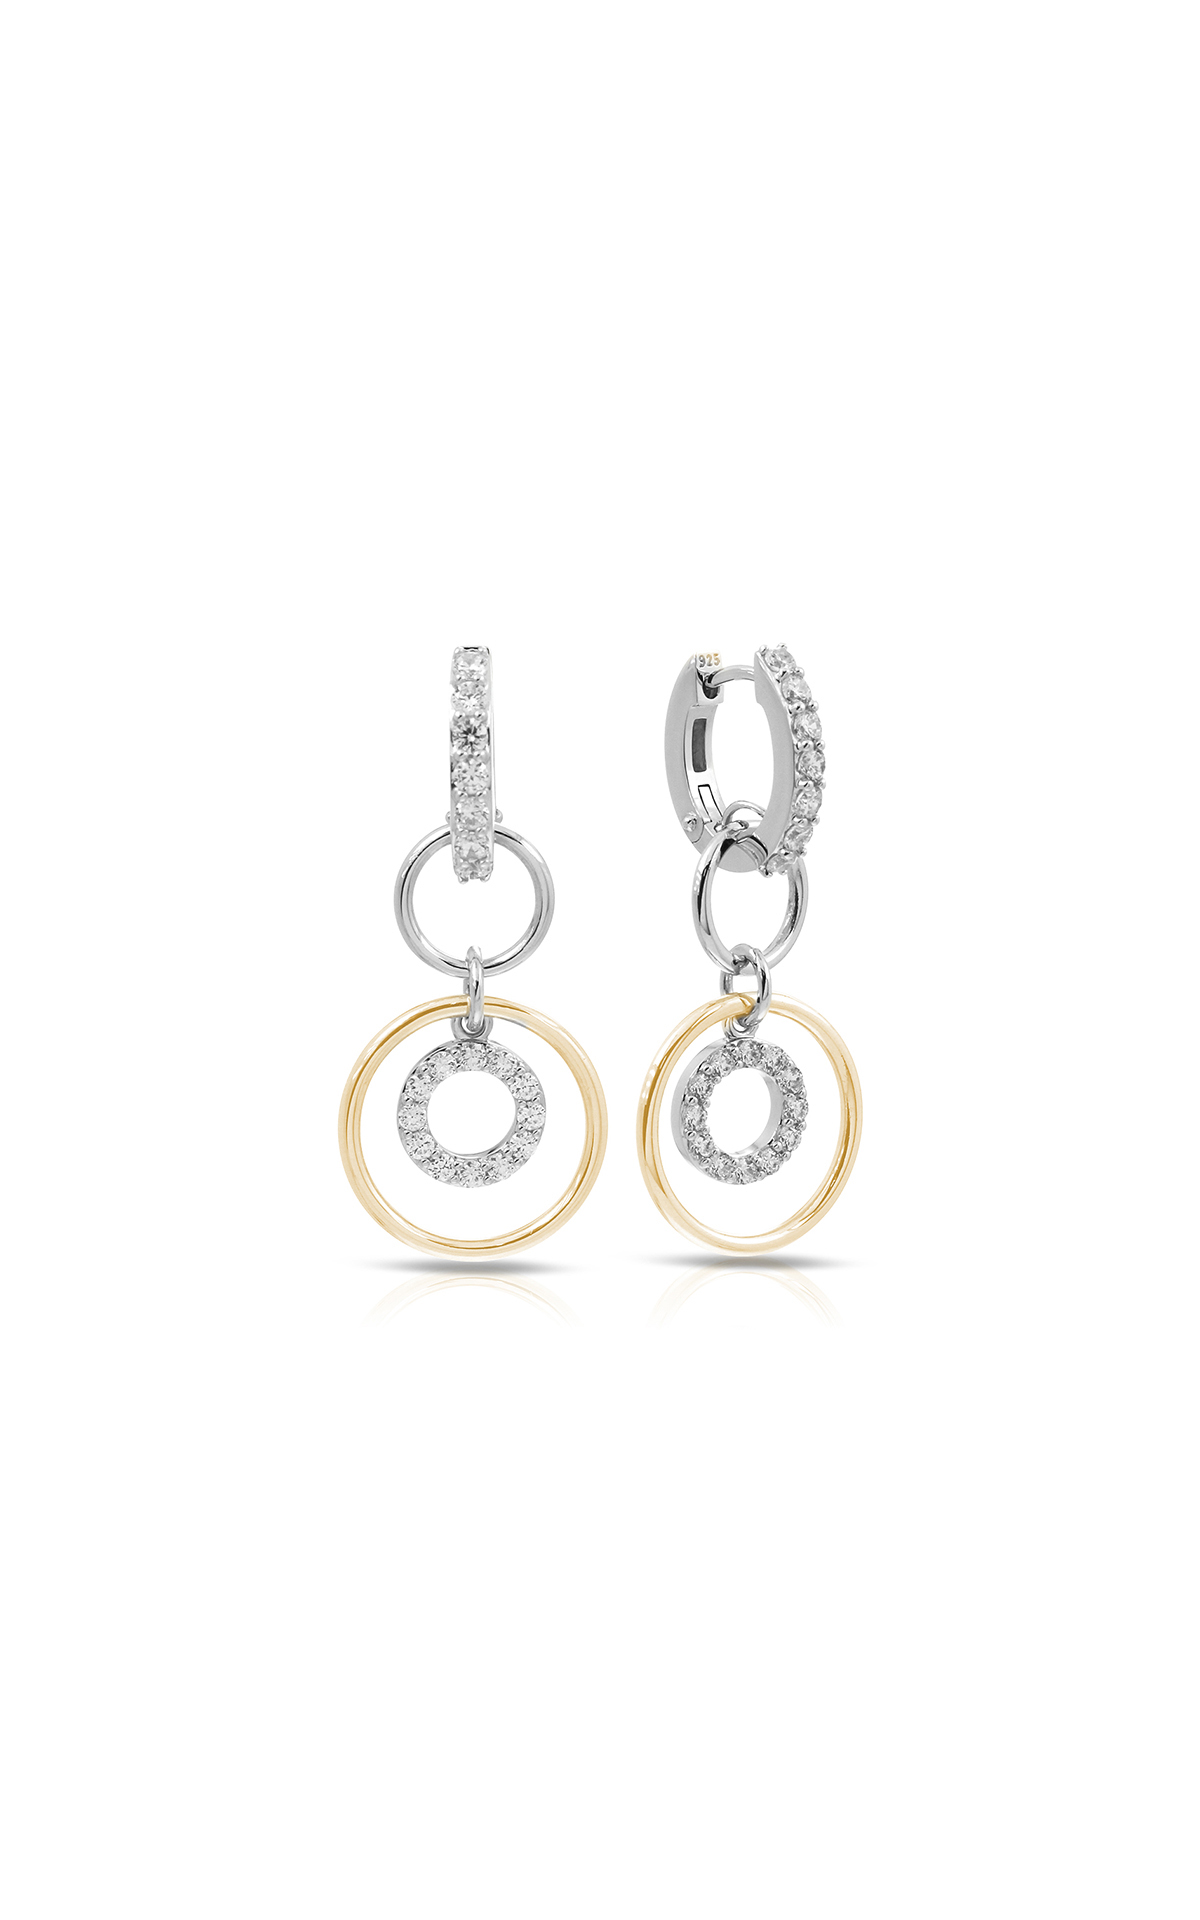 Belle Etoile Color Stone Concentra White and Yellow Earrings 3011620201 product image